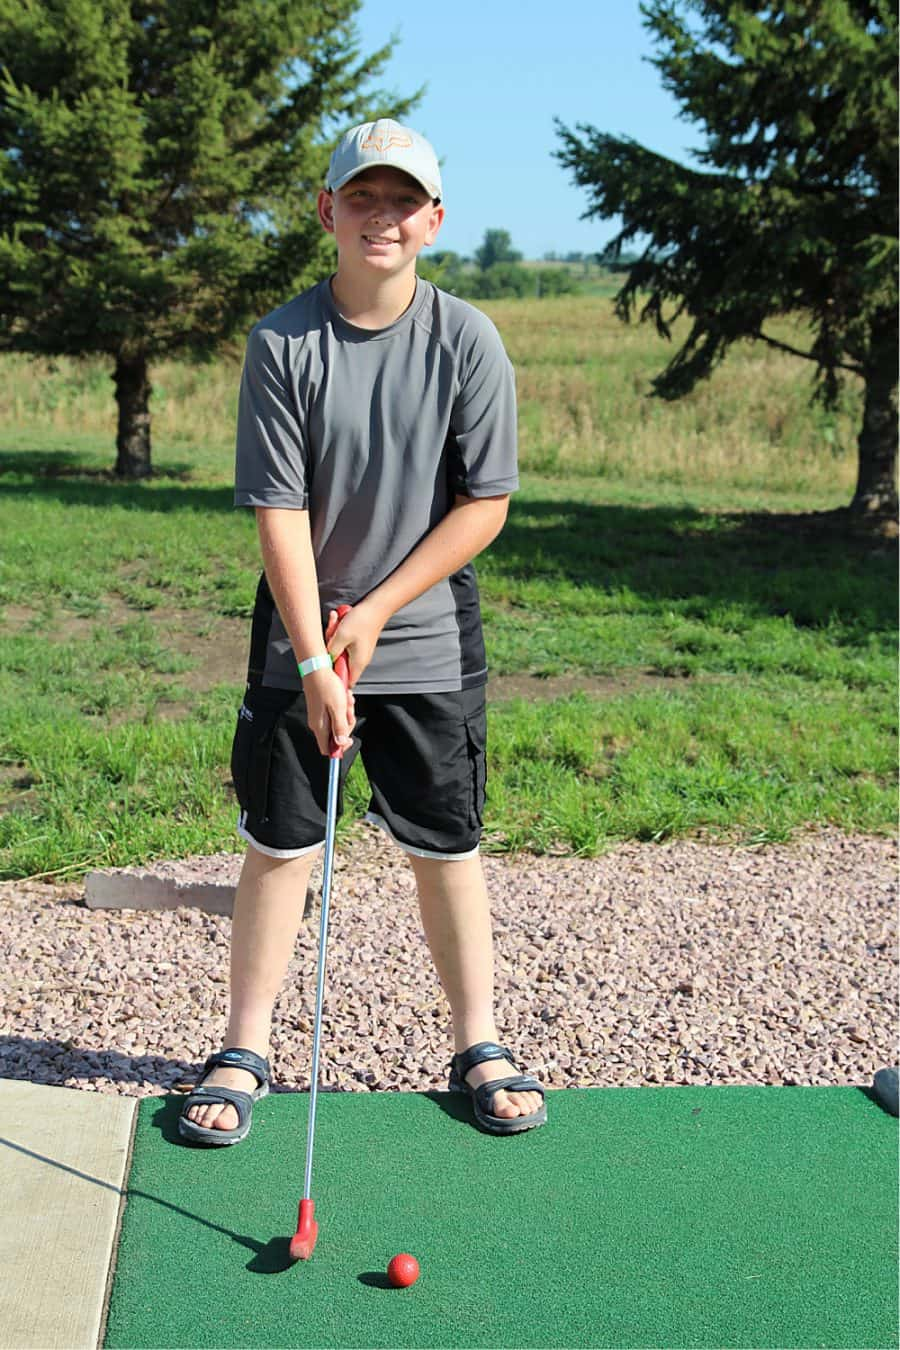 boy golfing - Jellystone - Top 10 Things To Do In Sioux Falls + The Best Place To Stay!